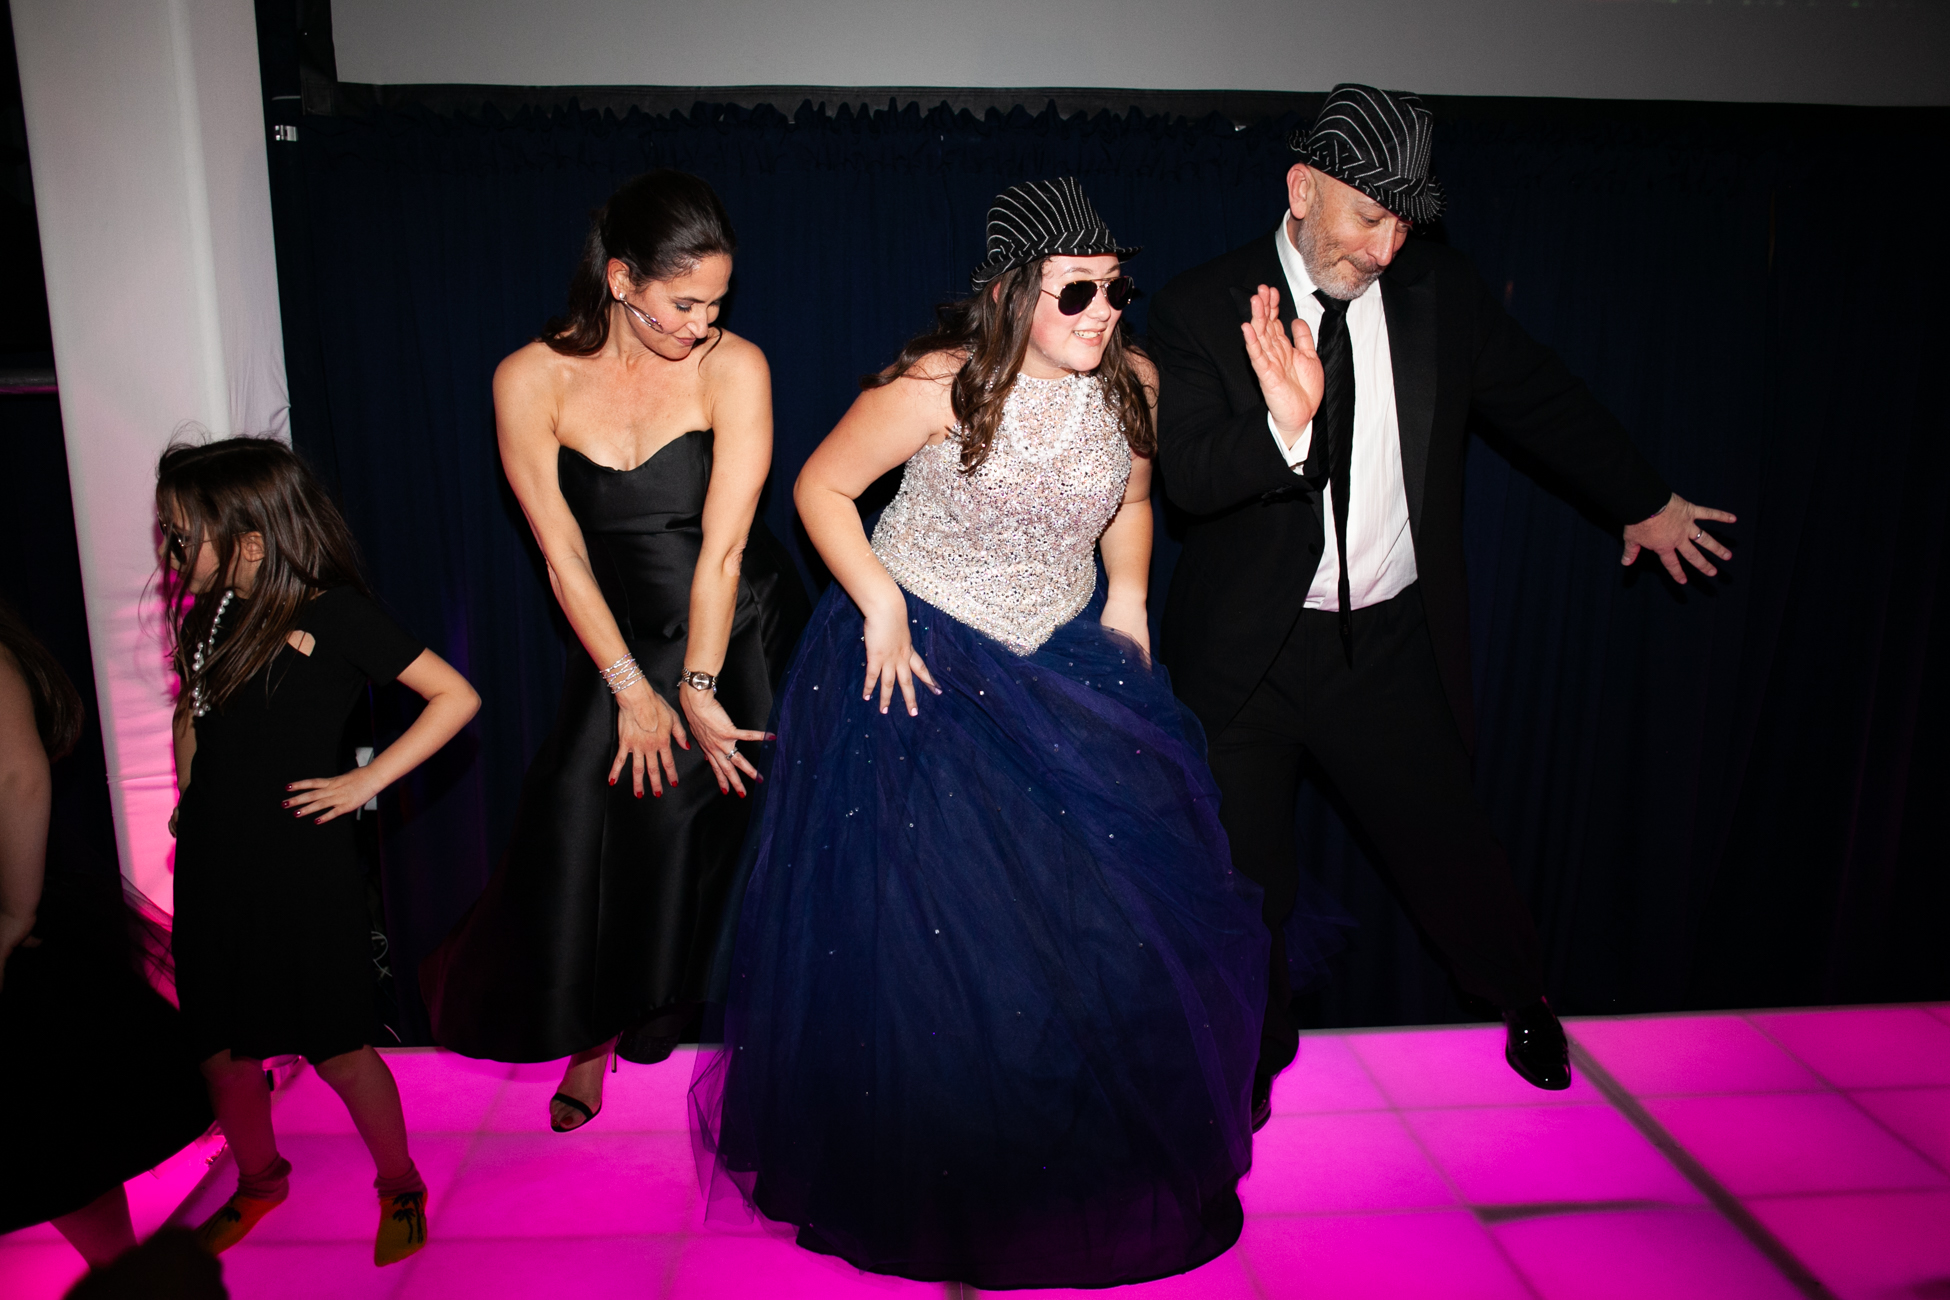 Sydney's Bat Mitzvah at Sheraton Society Hill by Avi Loren Fox LLC - Sneak Peak-72.jpg